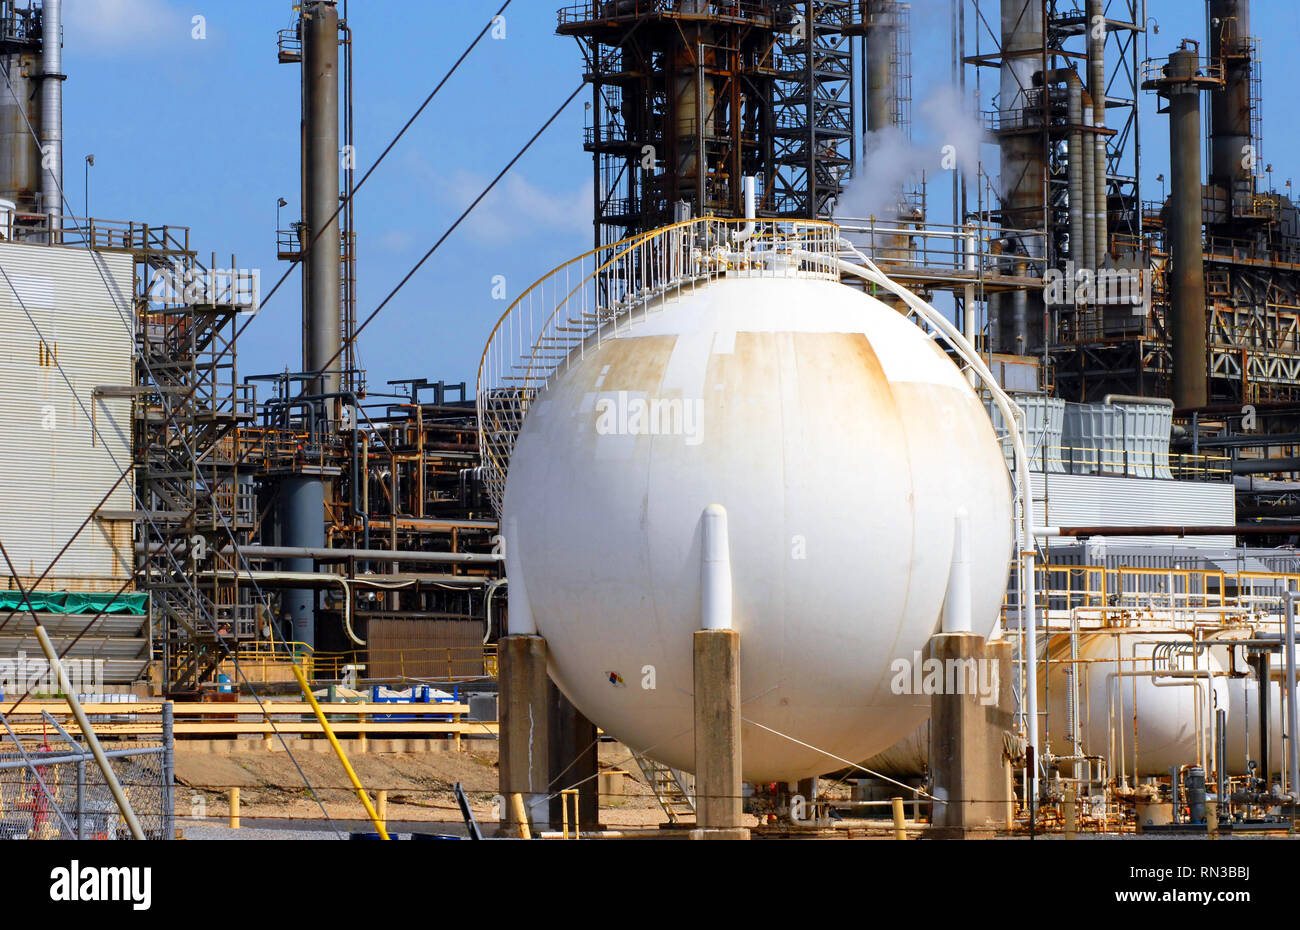 Large white storage tank at oil refinery has spiral stairs winding around base to top of tank. - Stock Image